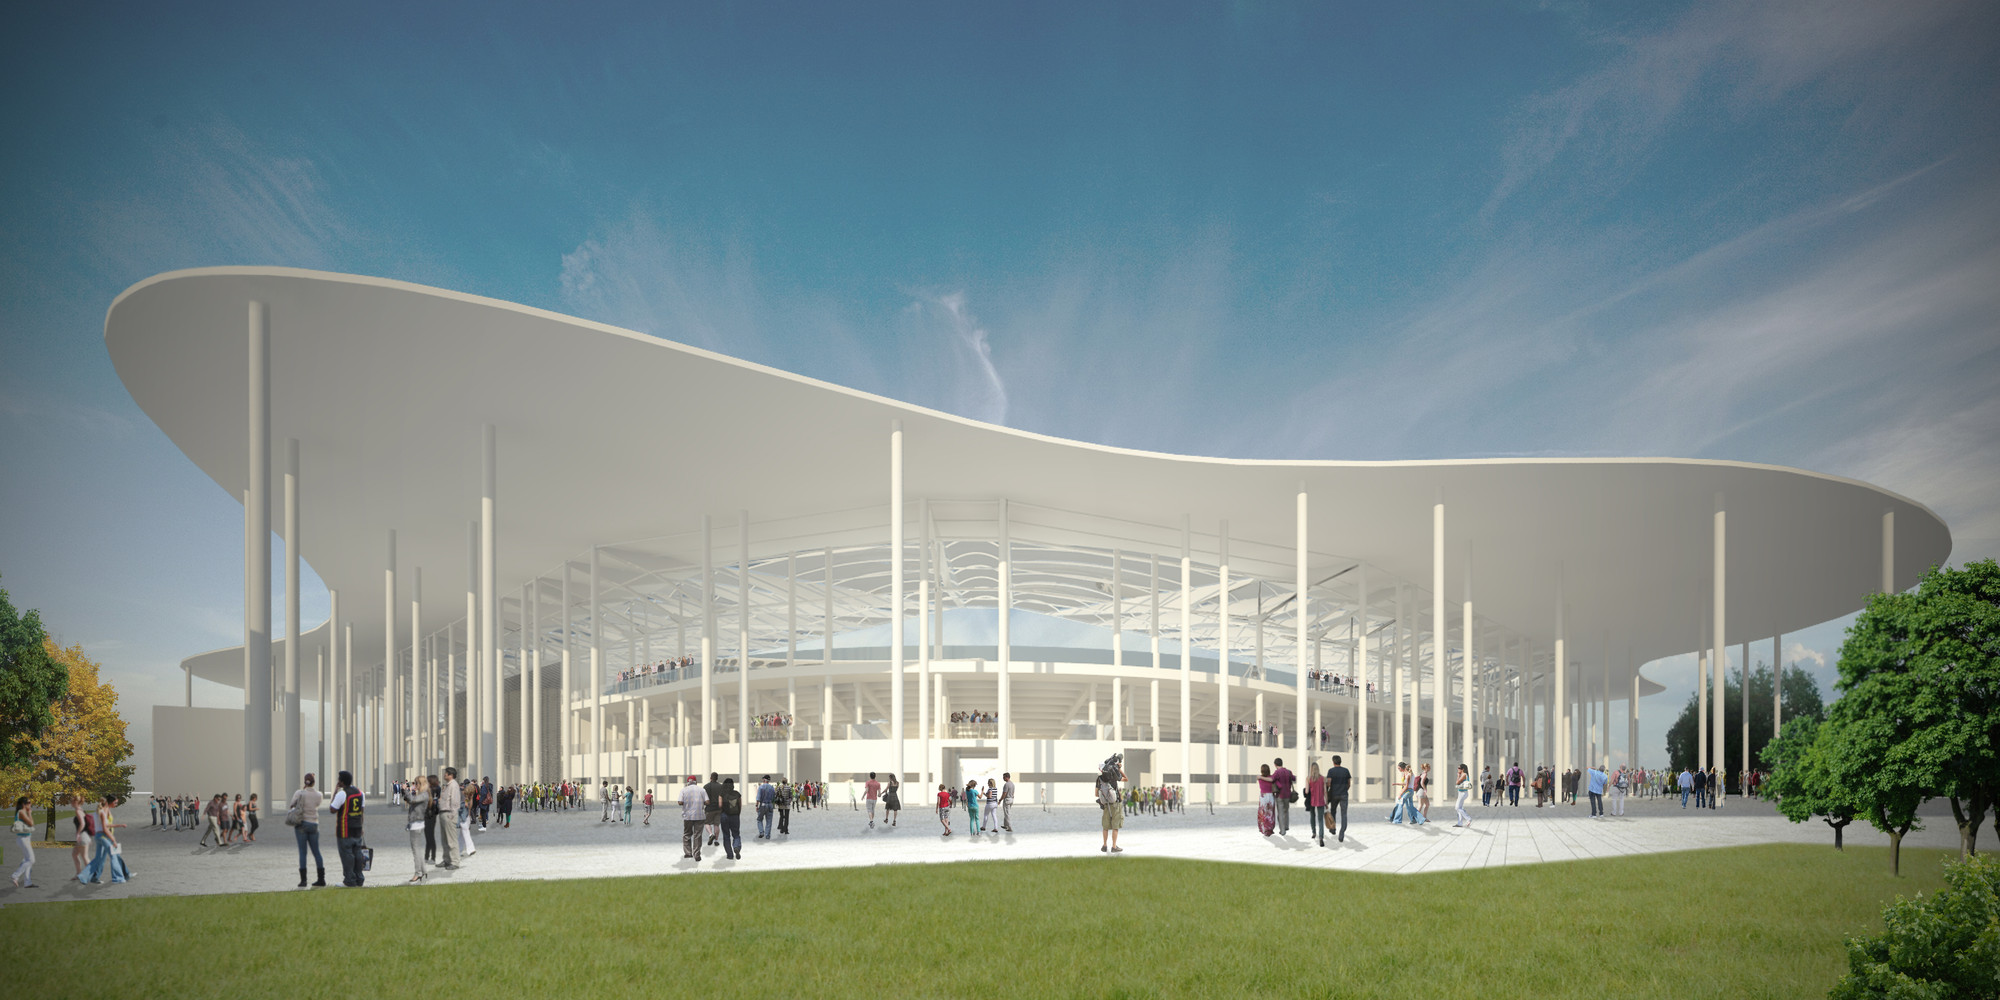 Competition Entry: Ruch Chorzów Football Stadium / Andrea Maffei Architects, View towards entrance. Image Courtesy of Andrea Maffei Architects